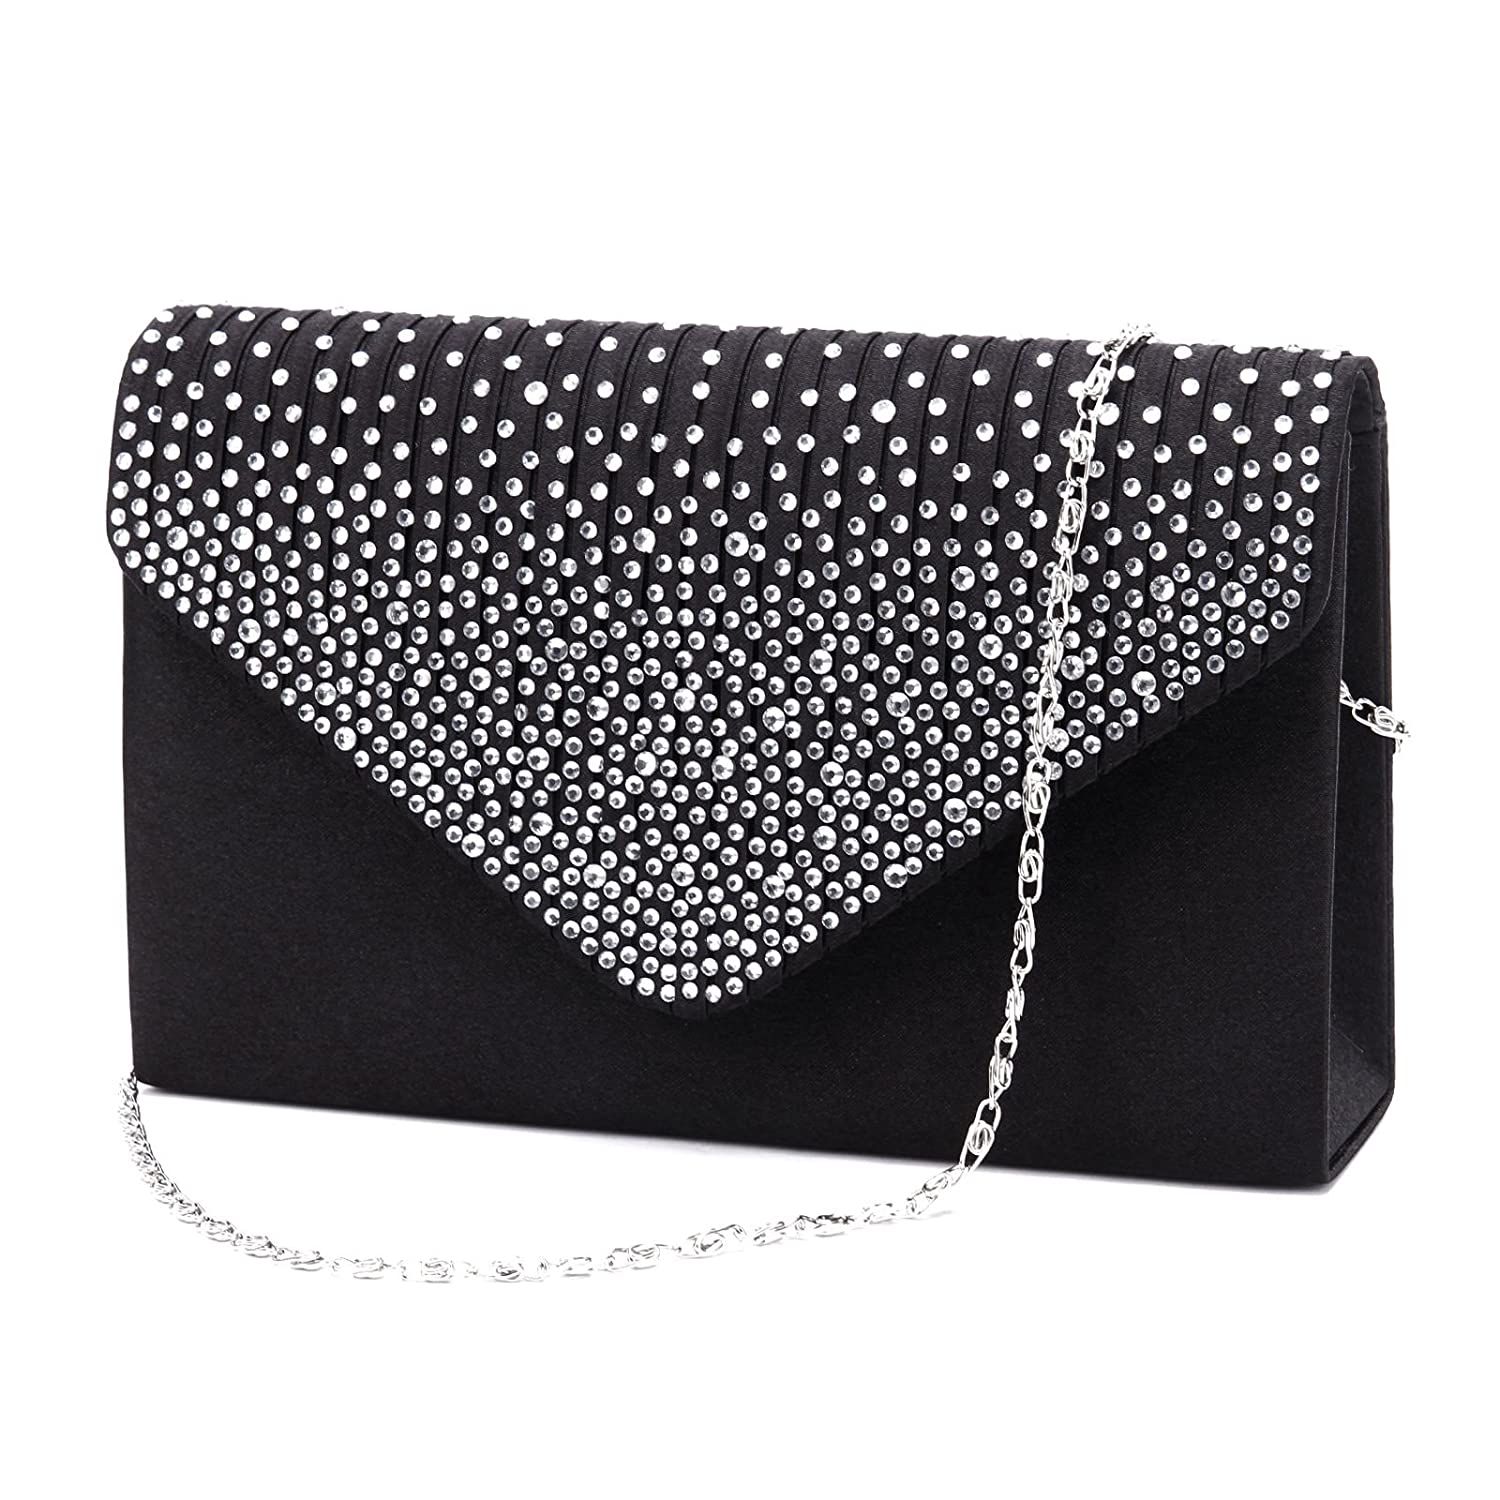 Nodykka Women Evening Envelope Rhinestone Frosted Handbag Party Bridal Clutch Purse by Nodykka